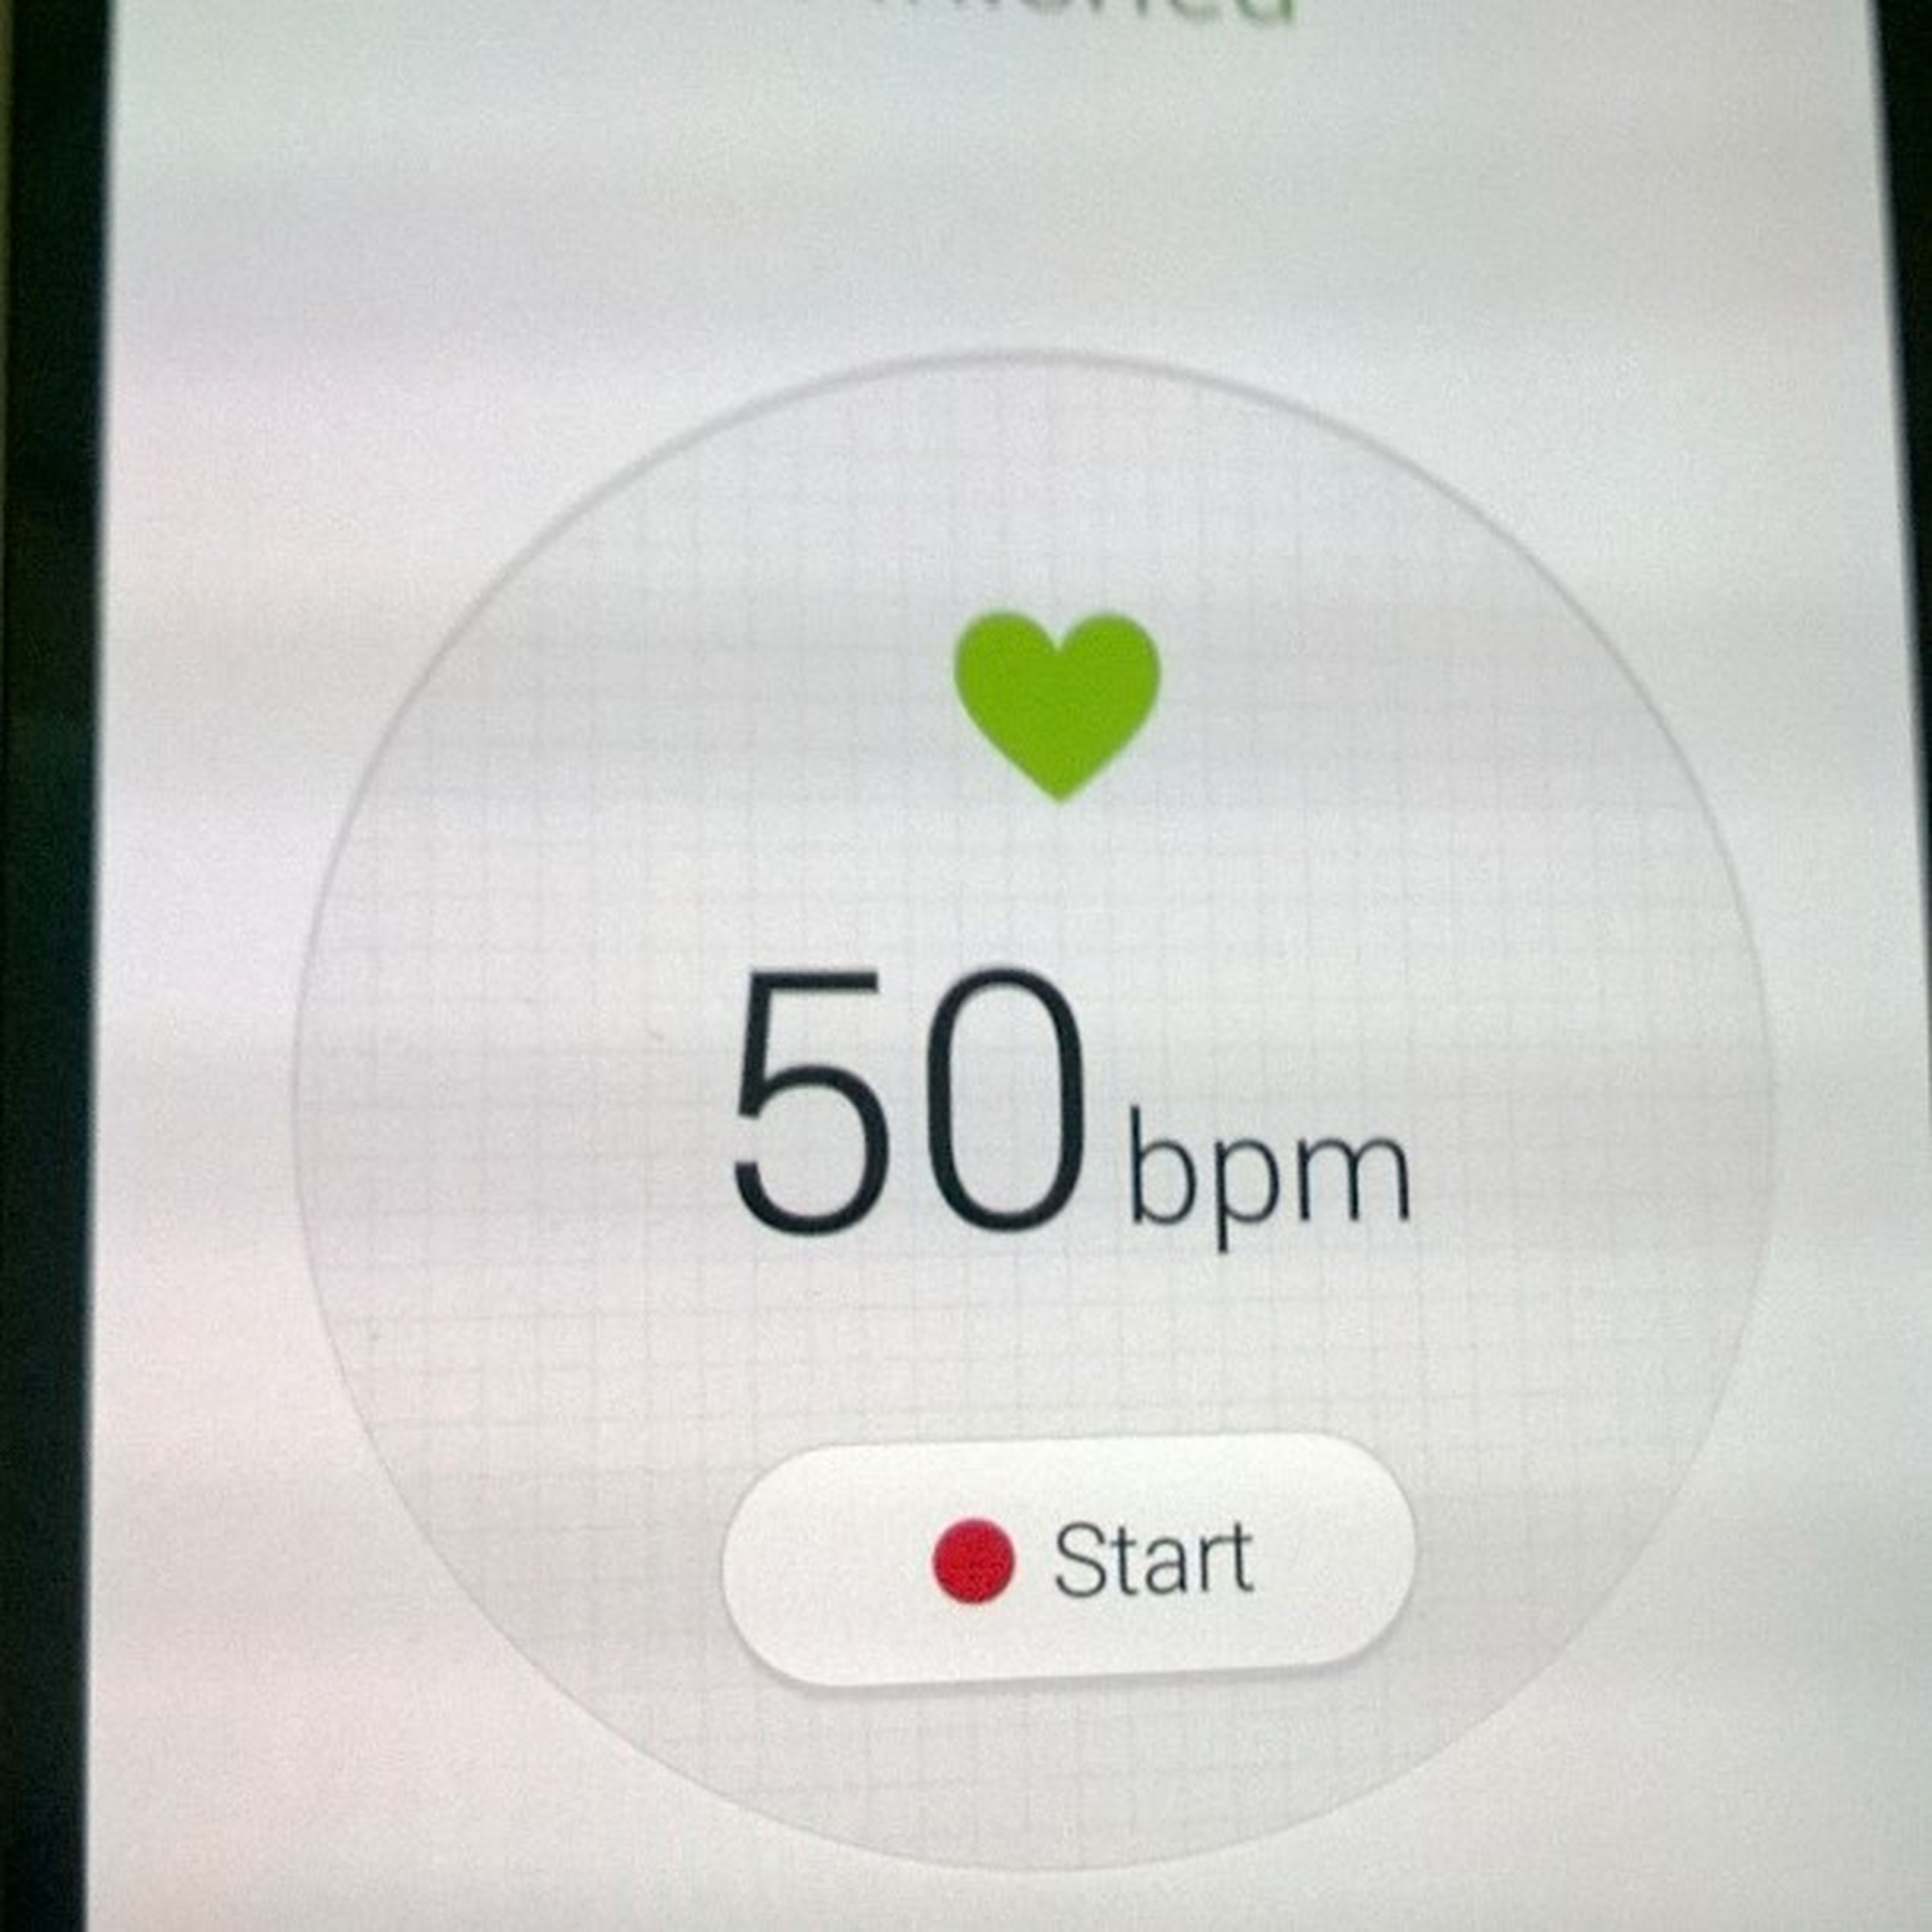 My baseline heart rate waking up to an uneventful oncall. Last case was before midnight. Happy Postcall AkuTakJonah